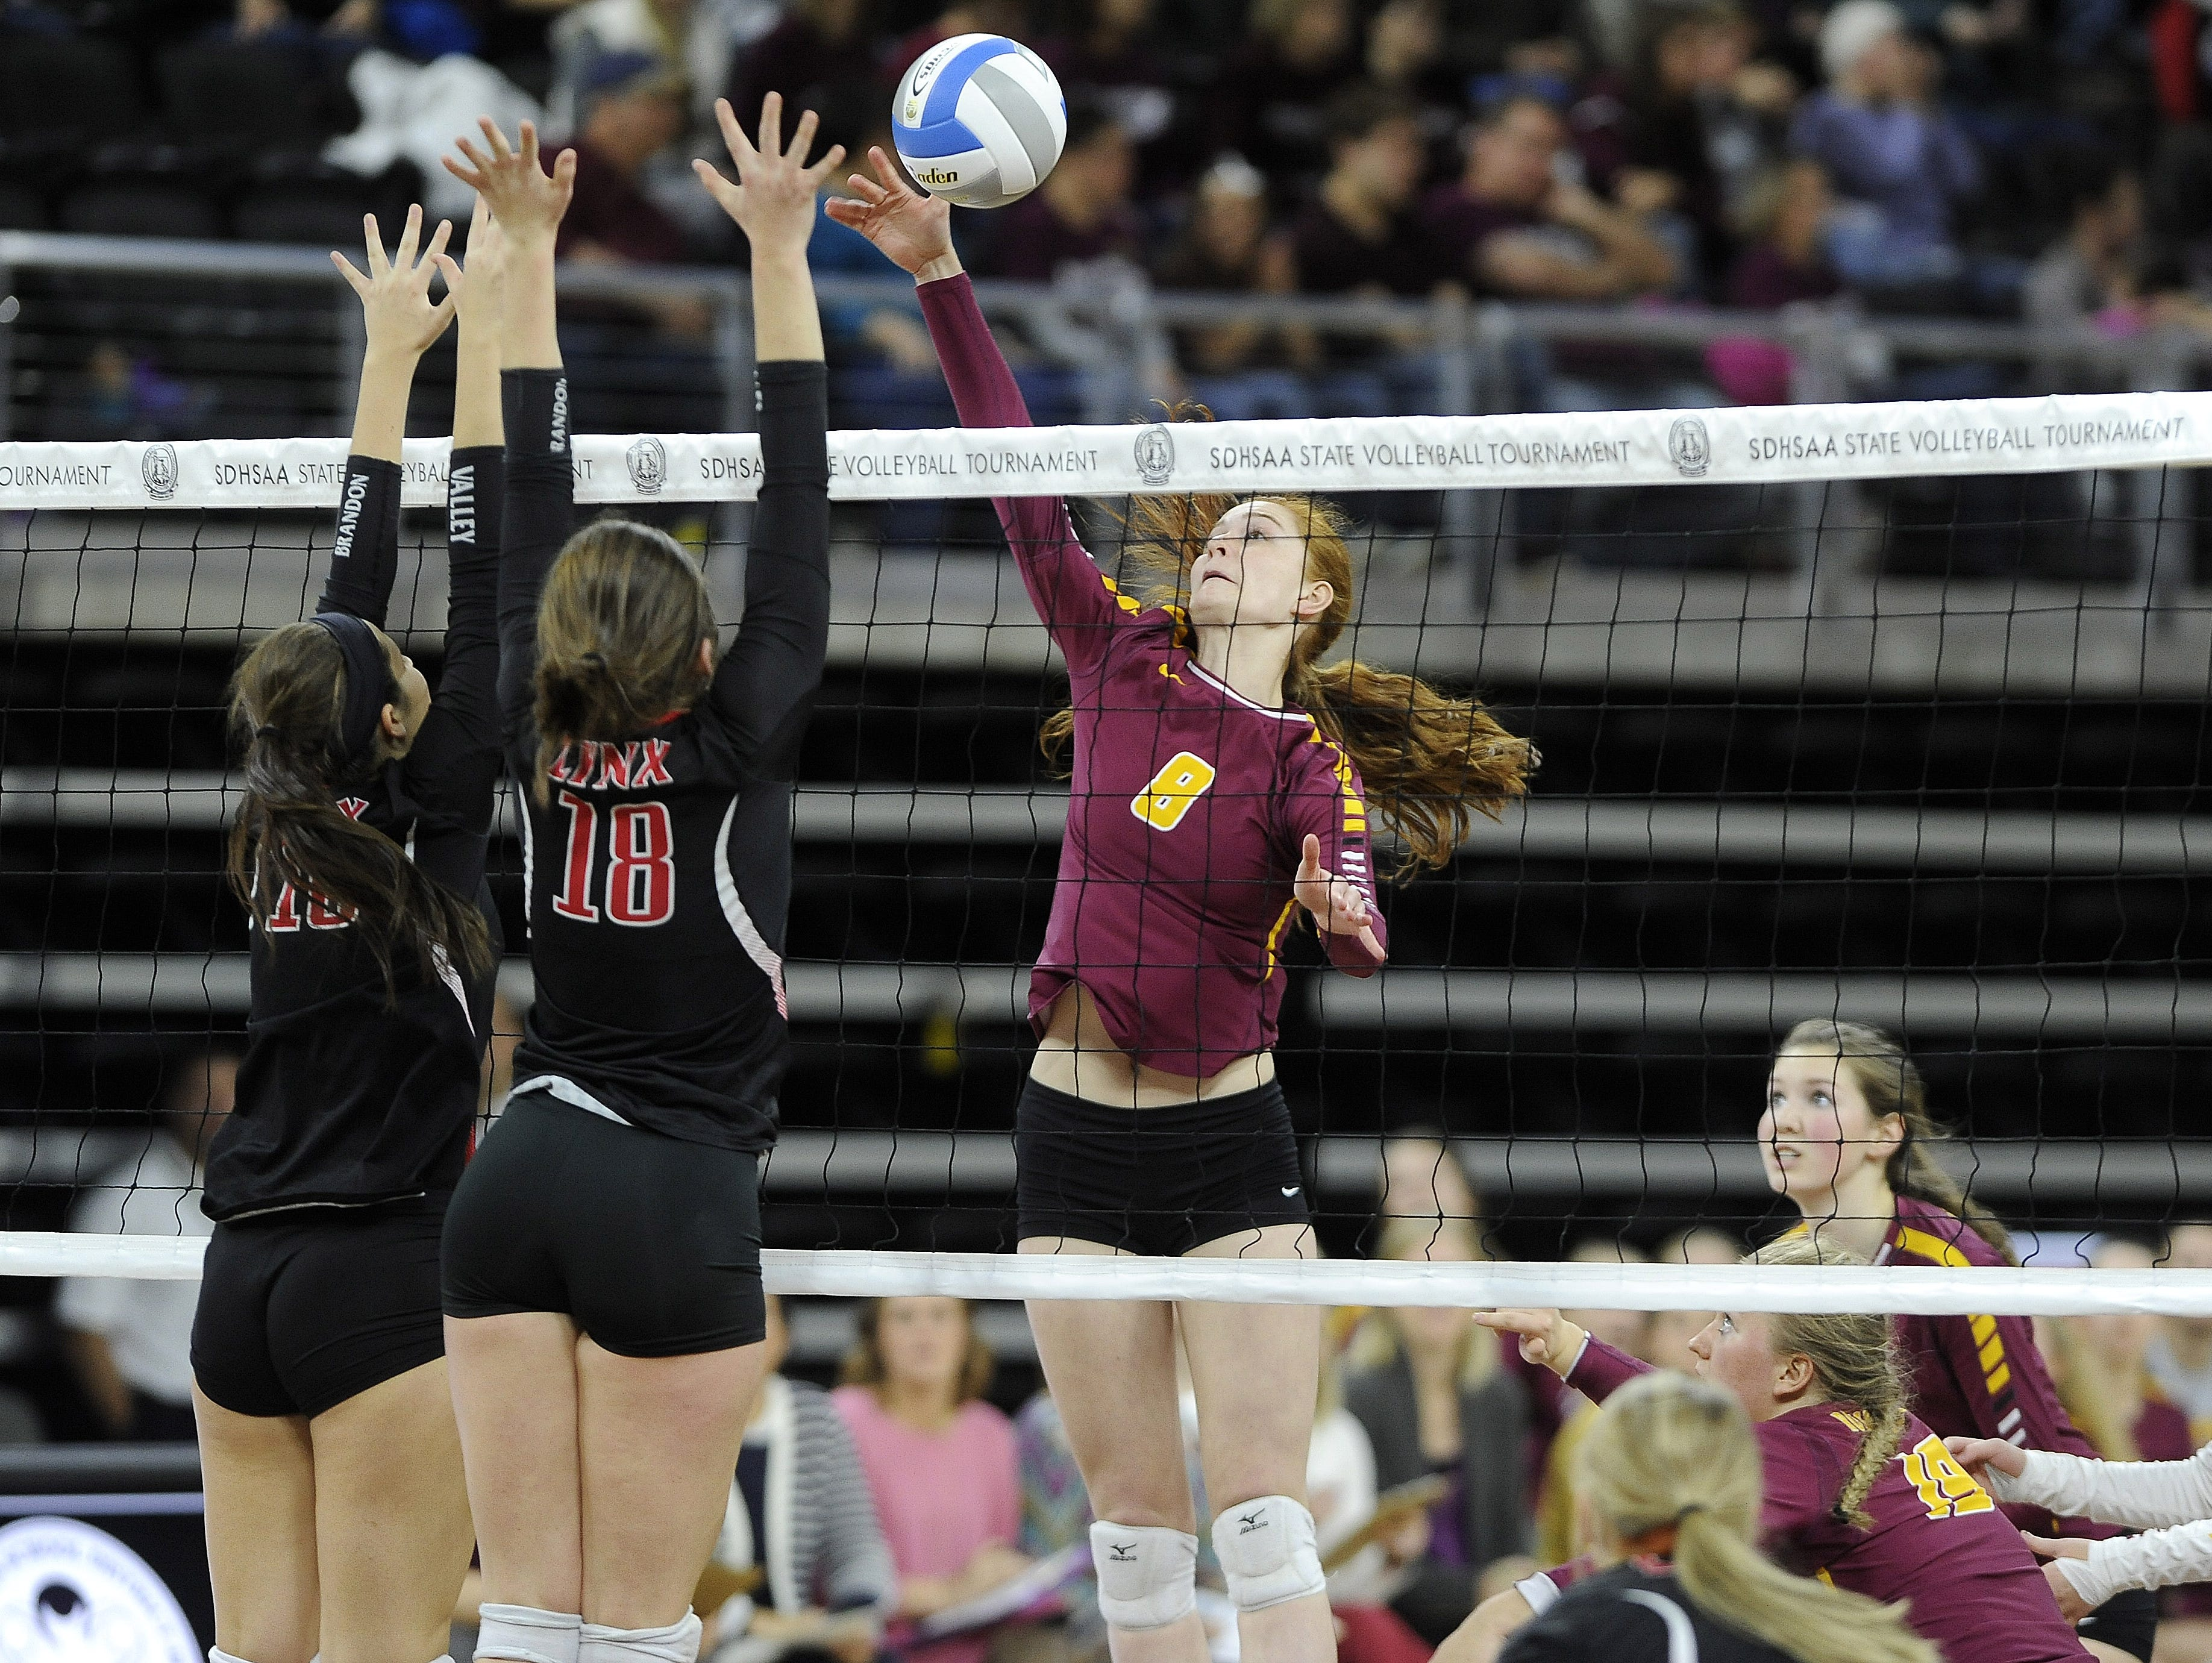 Roosevelt's #8 Mikaela Ahrendt sets the volleyball against Brandon Valley's #16 Abby Myers and #18 Elsie Zajicek during state volleyball action at the Denny Sanford Premier Center in Sioux Falls, S.D., Thursday, Nov. 19, 2015.